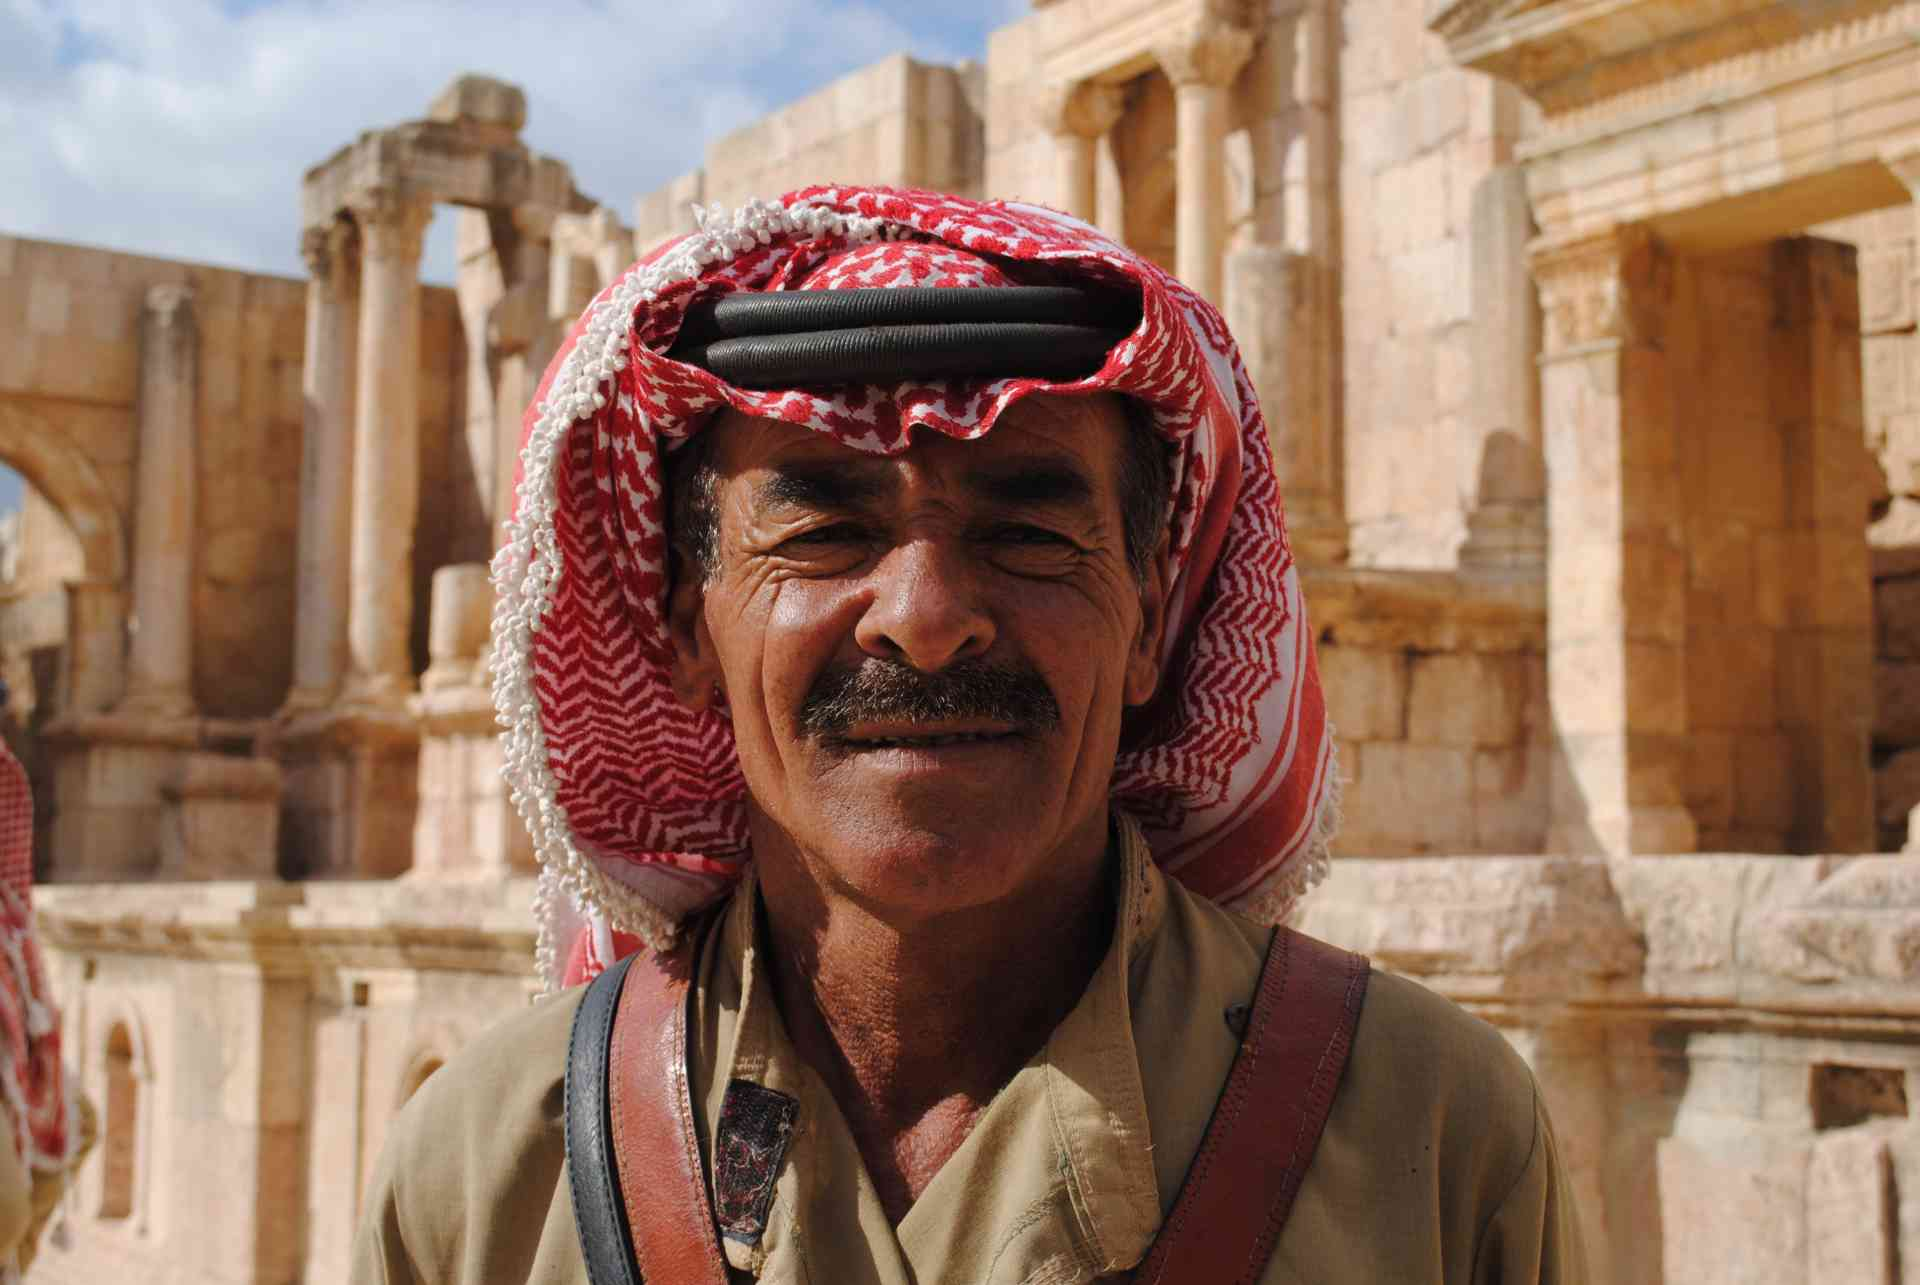 Local at Jerash, Jordan